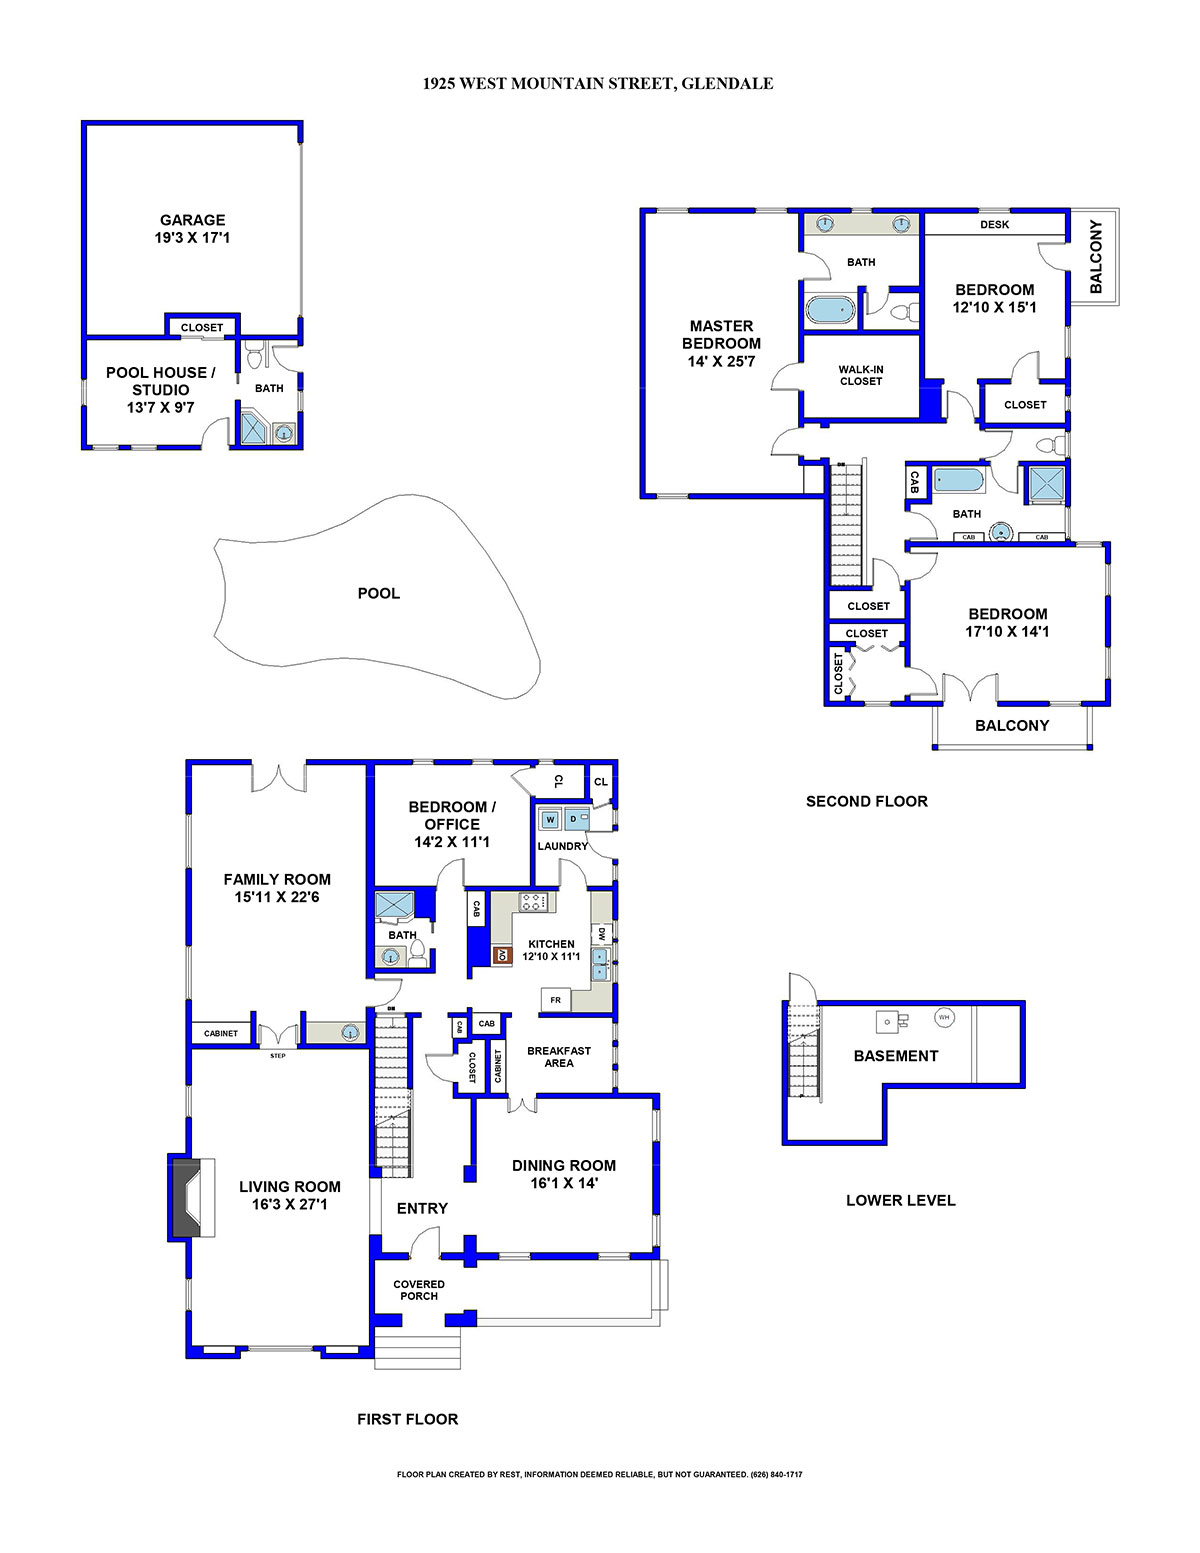 1925 W Mountain St Floorplan